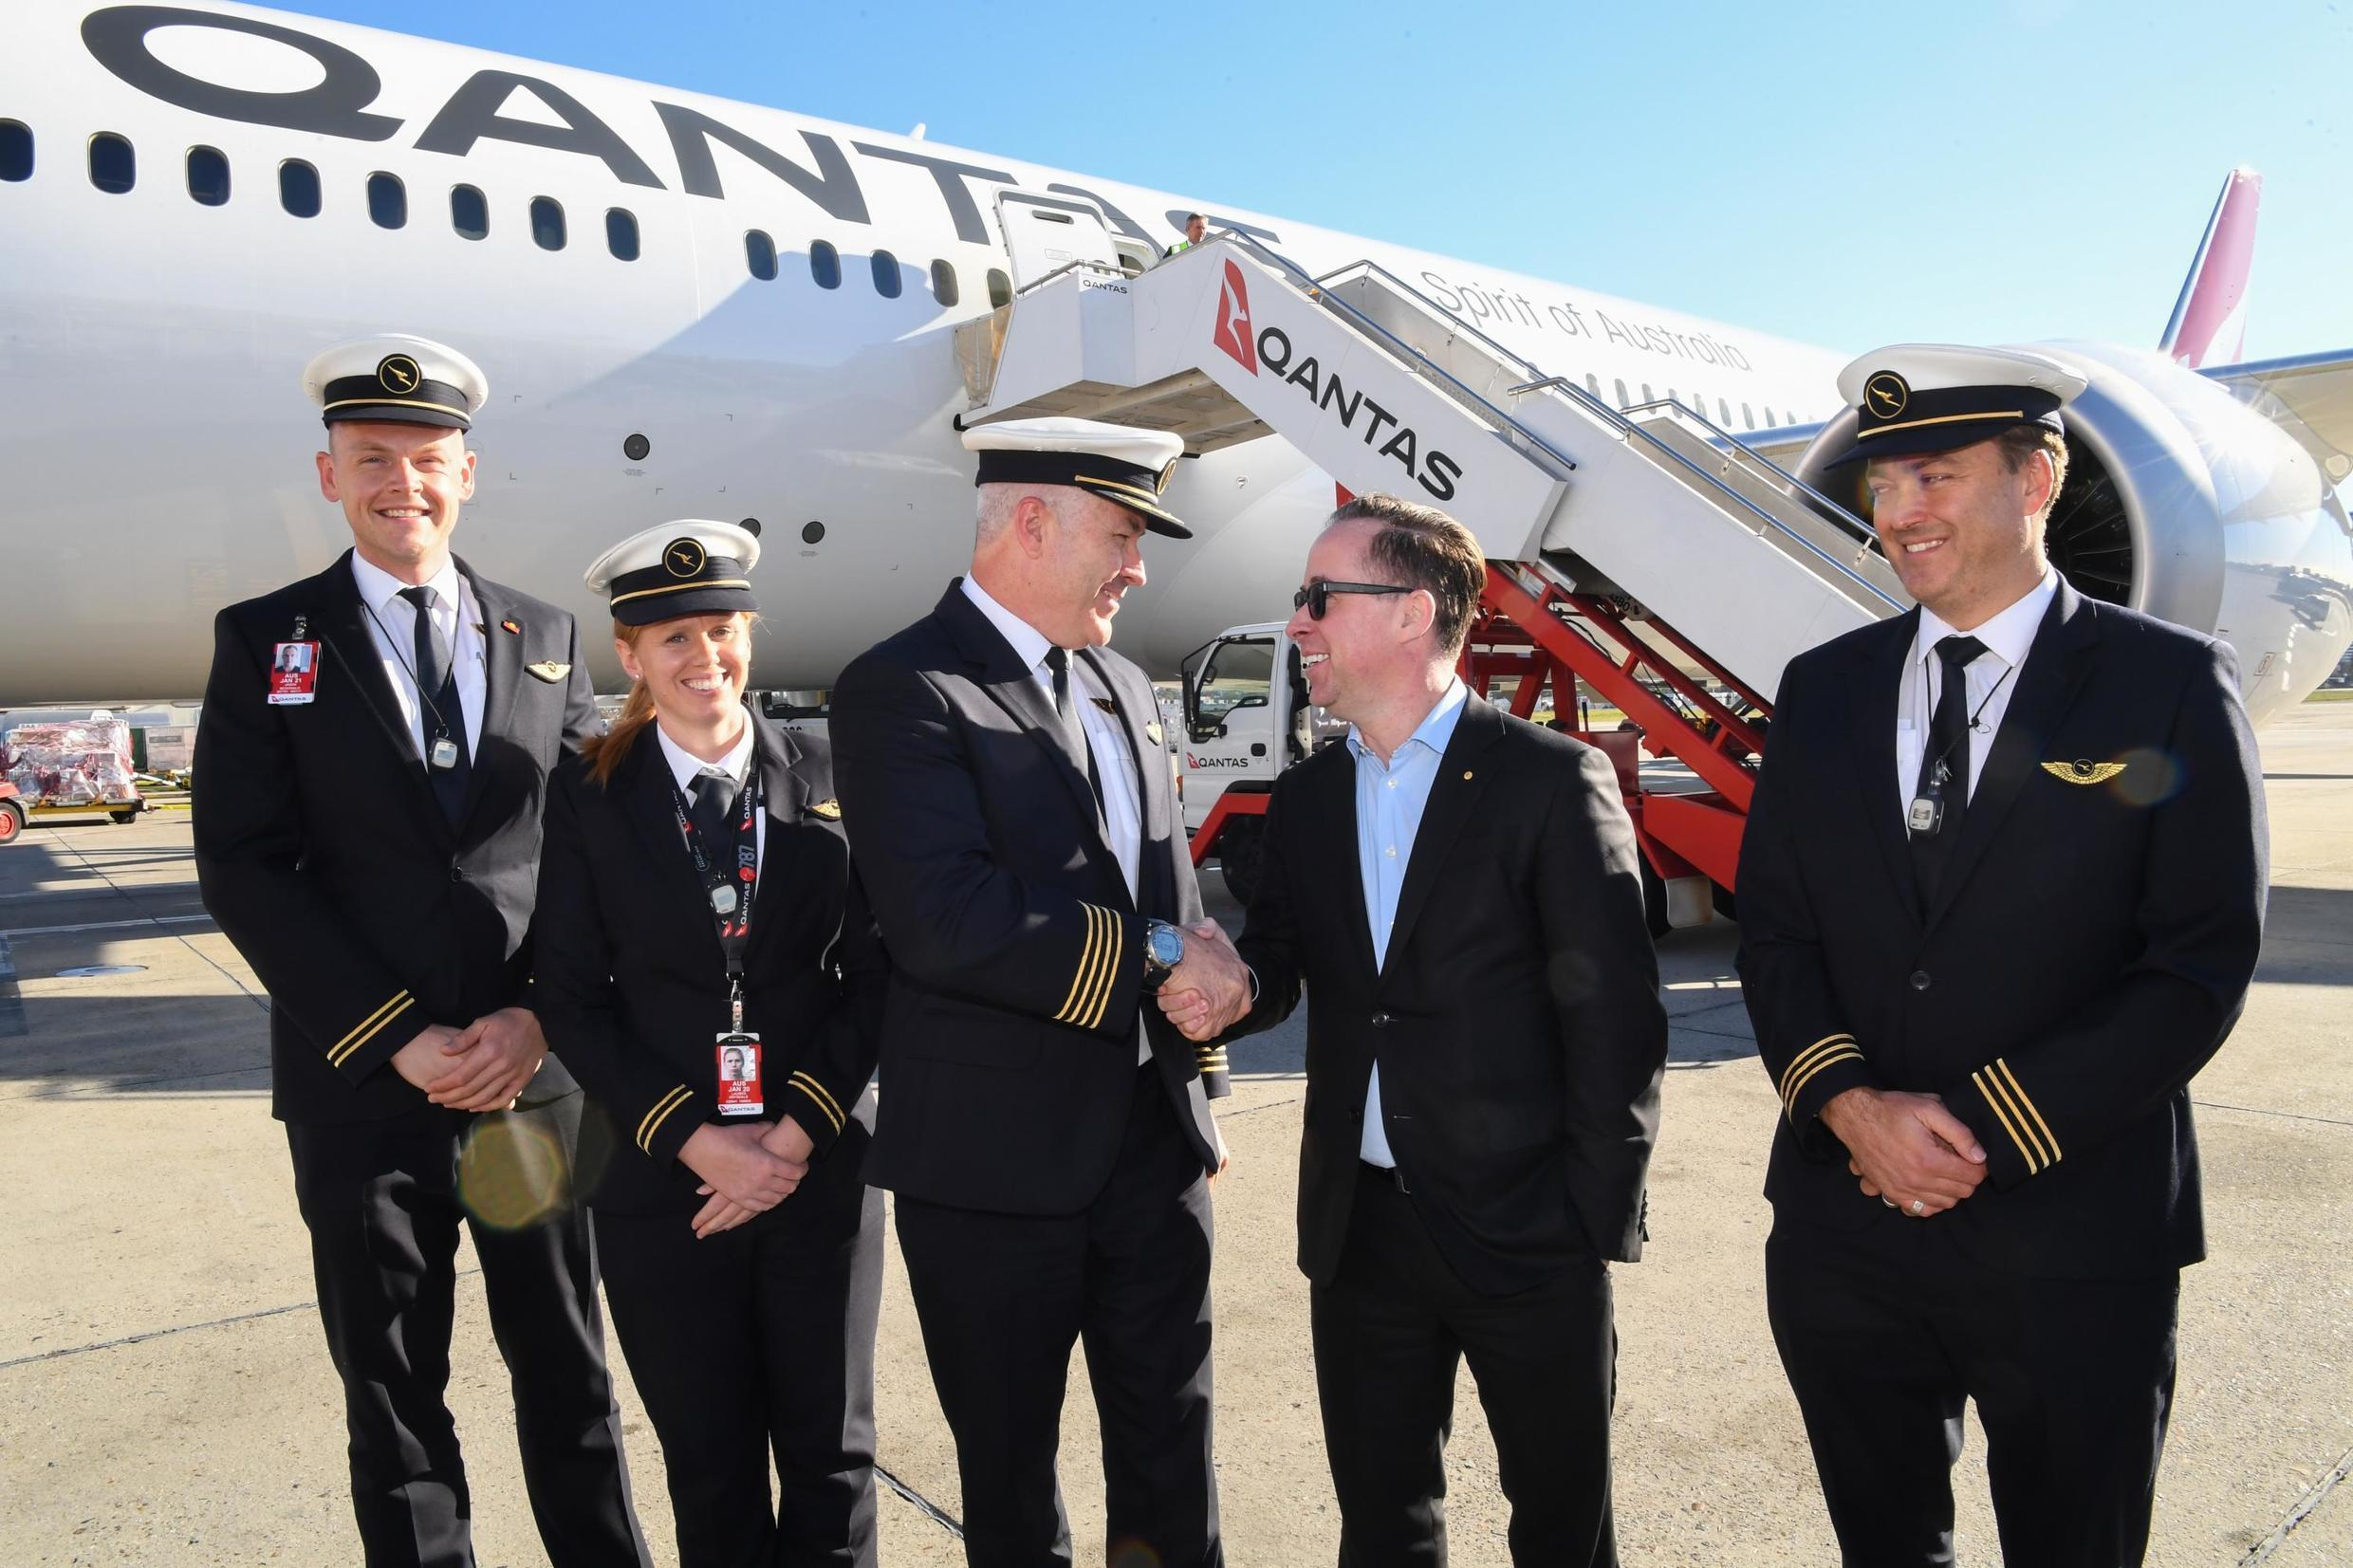 Australian Airline Qantas to Cut 6,000 Jobs in Long-Term Pandemic Recovery Plan